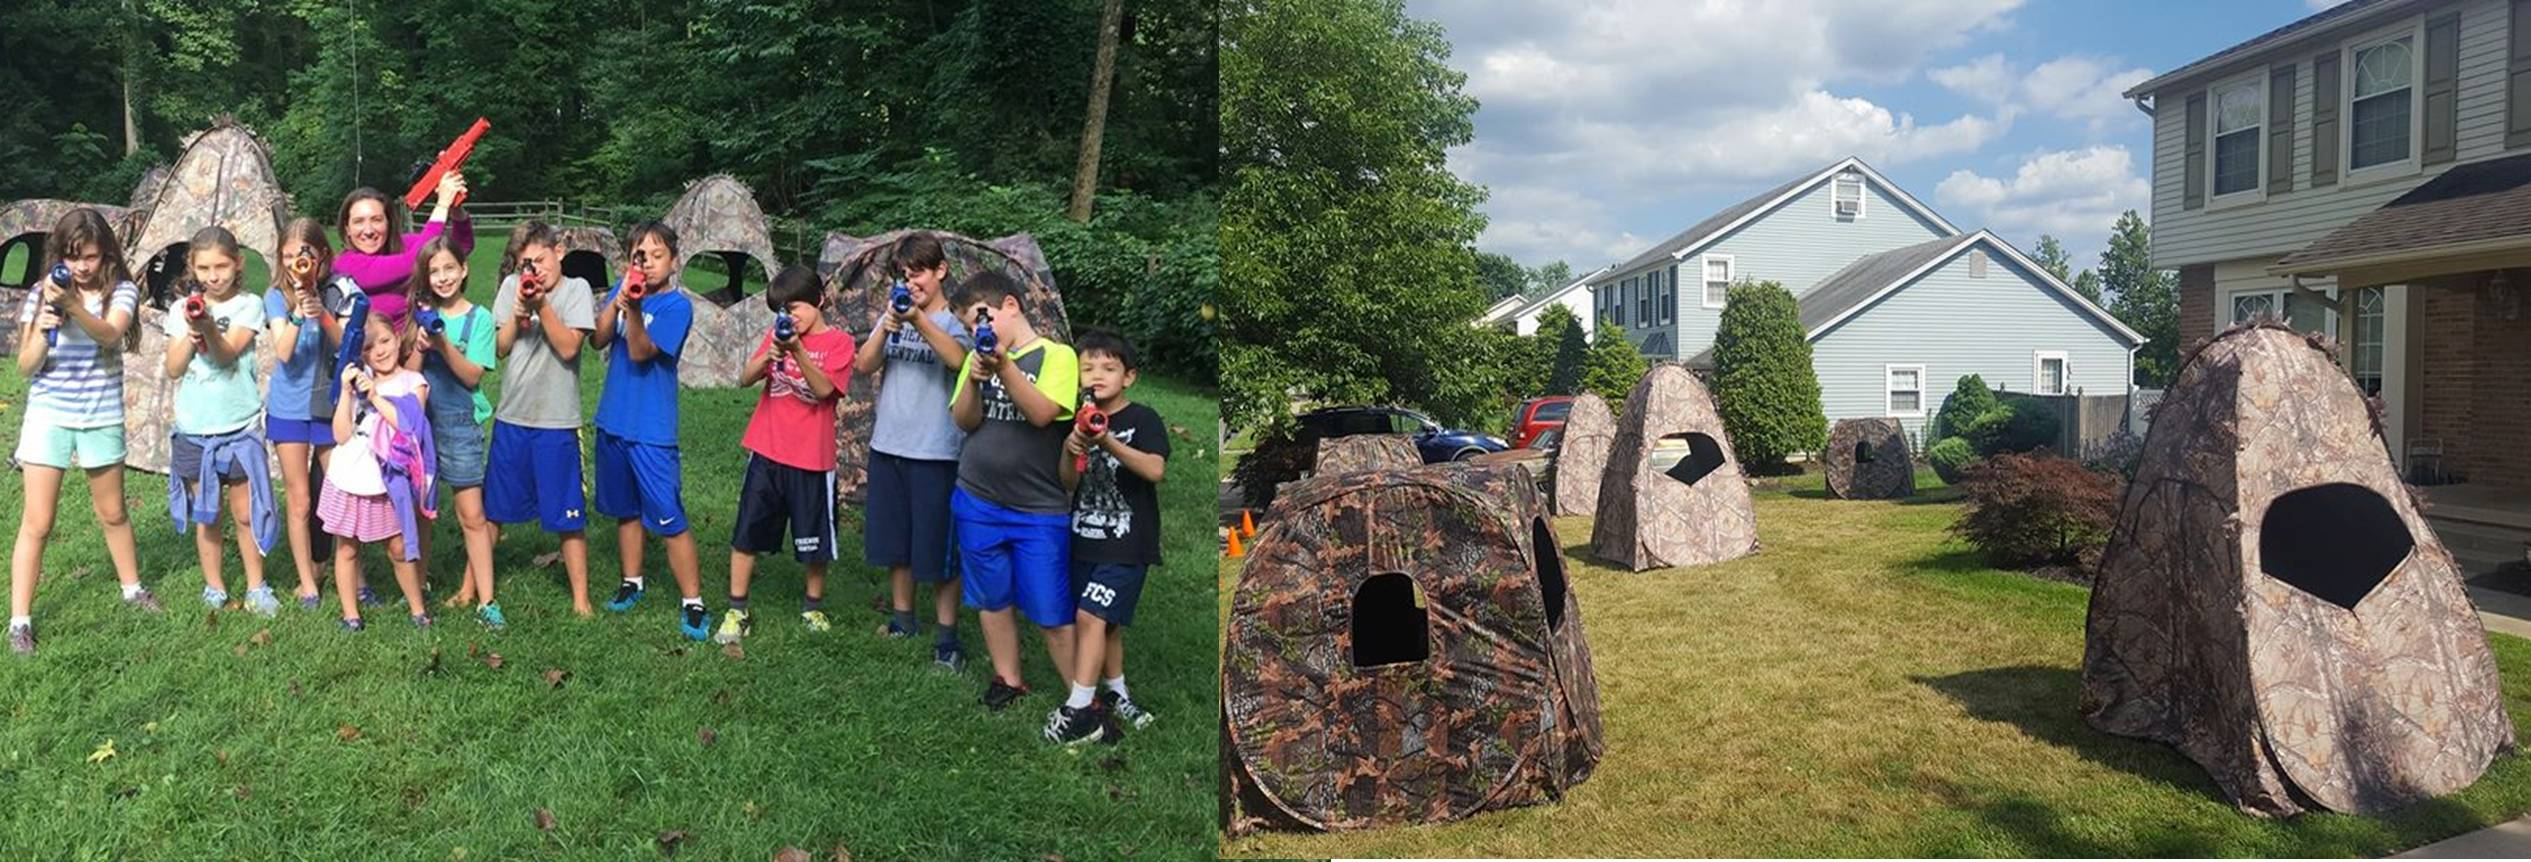 Laser tag entertainment for schools, churches and organizations in New Jersey, Philadelphia and Delaware